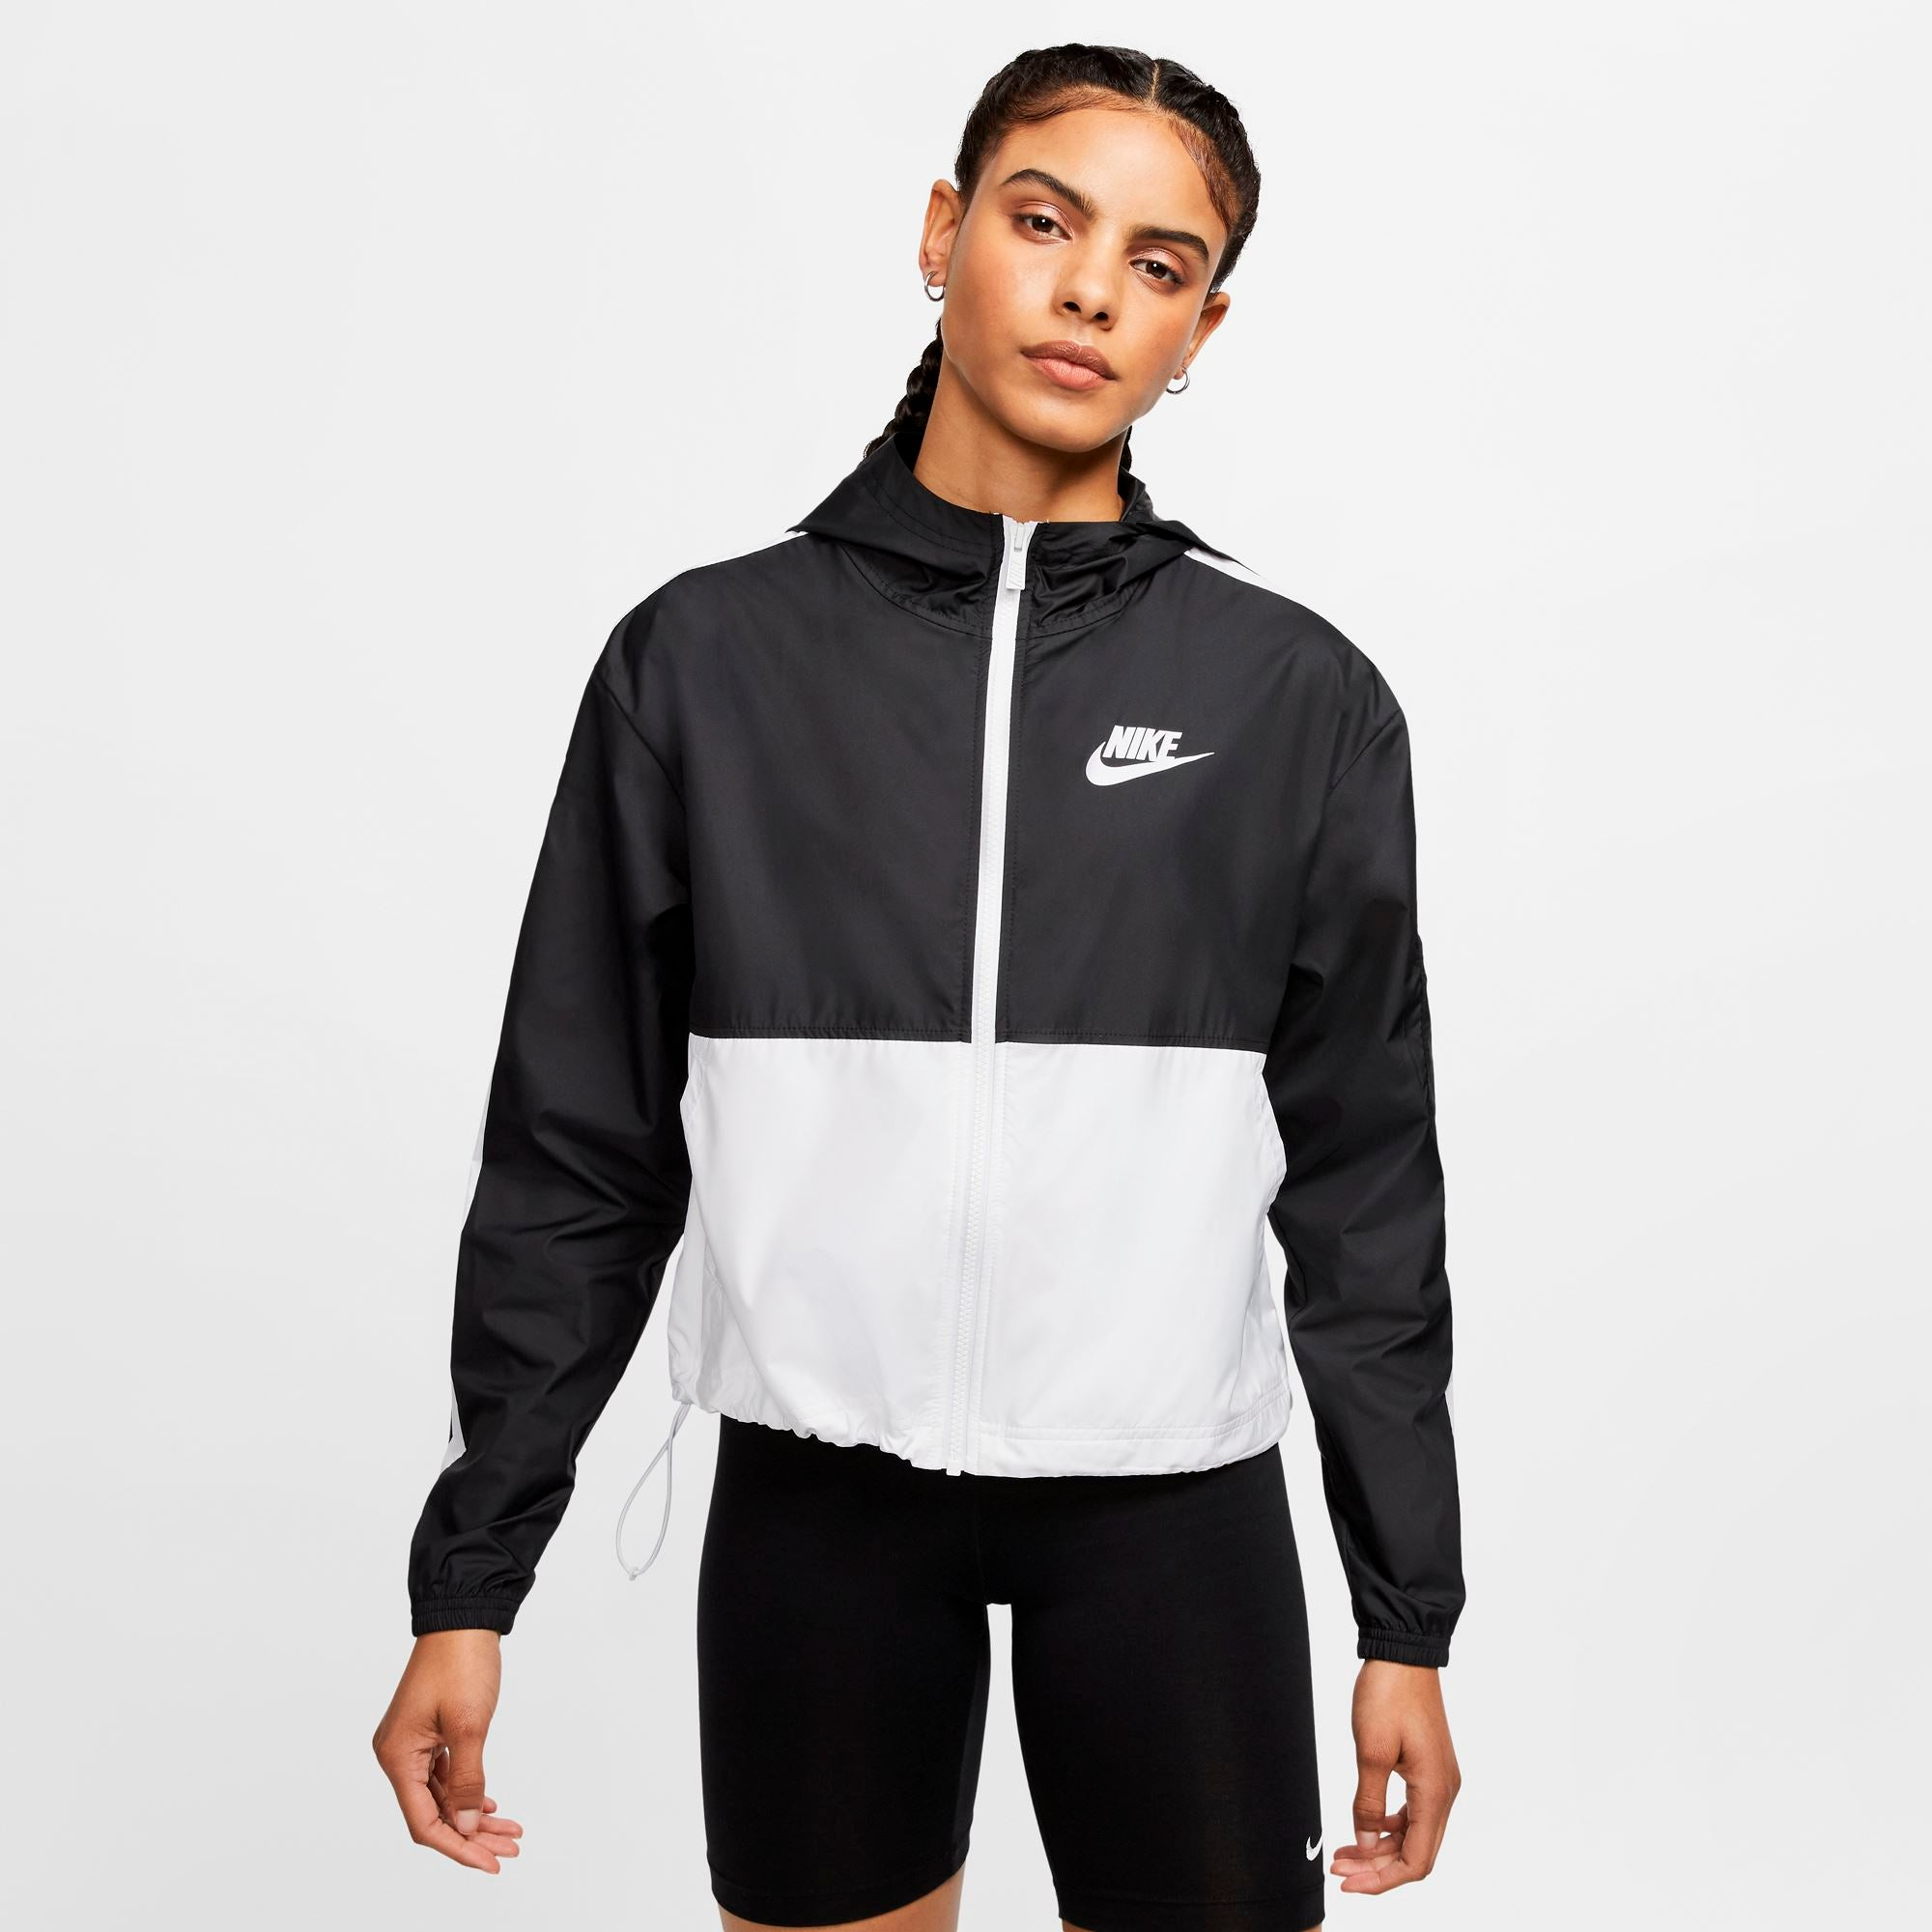 Nike Womens Sportswear Woven Jacket - Black/White Nike